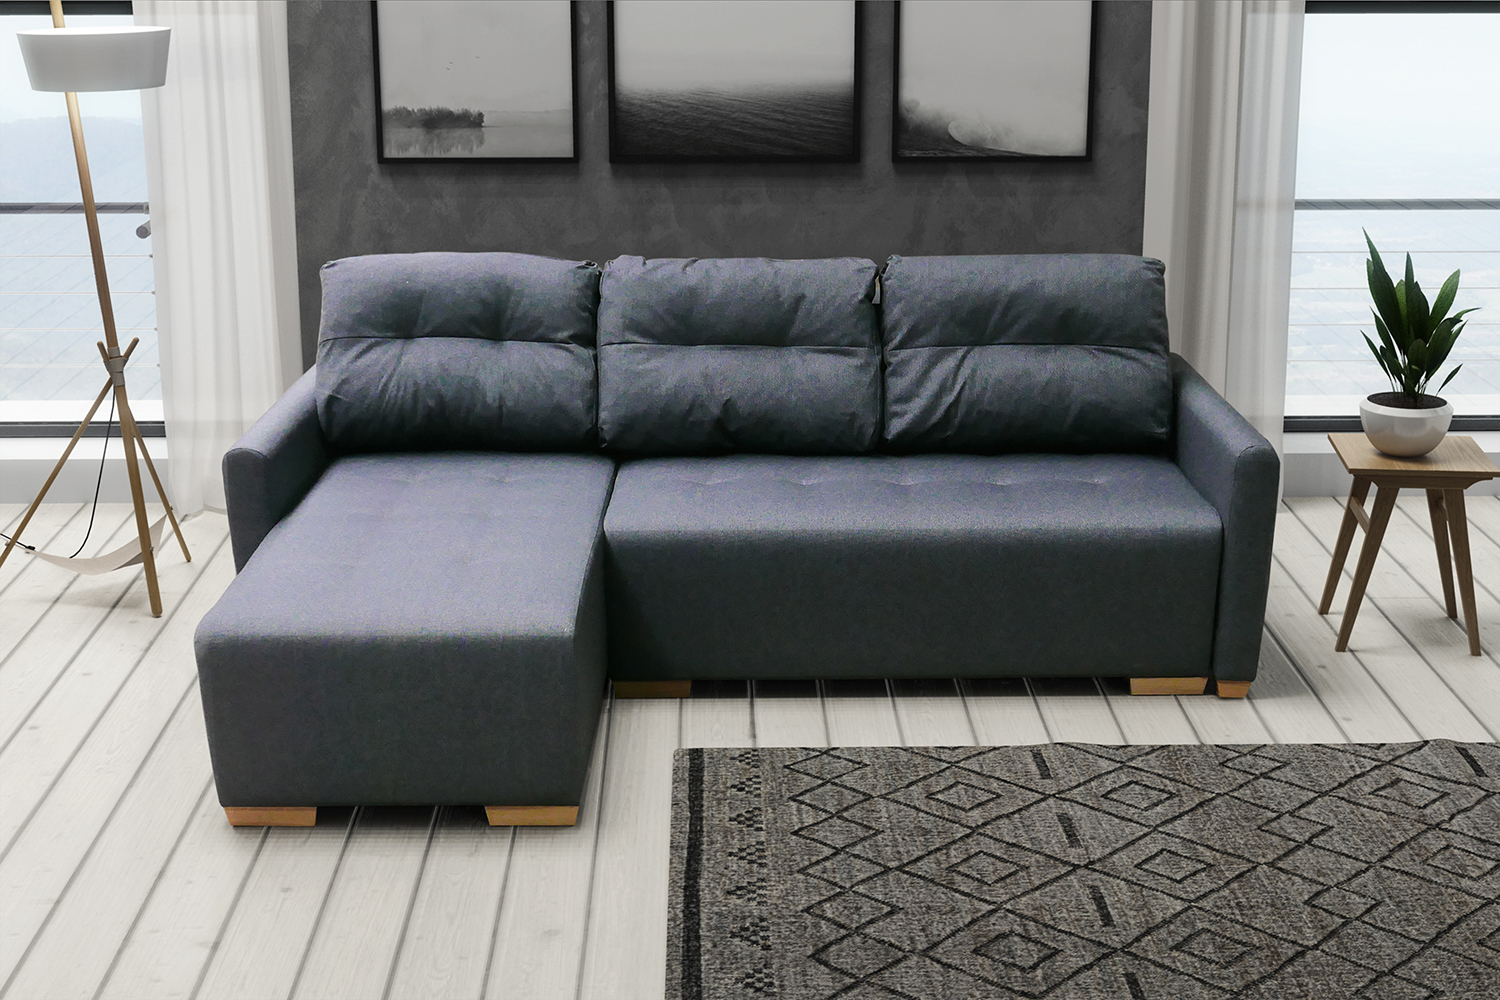 sofa bed with storage. MODERN CORNER SOFA BED \ Sofa Bed With Storage